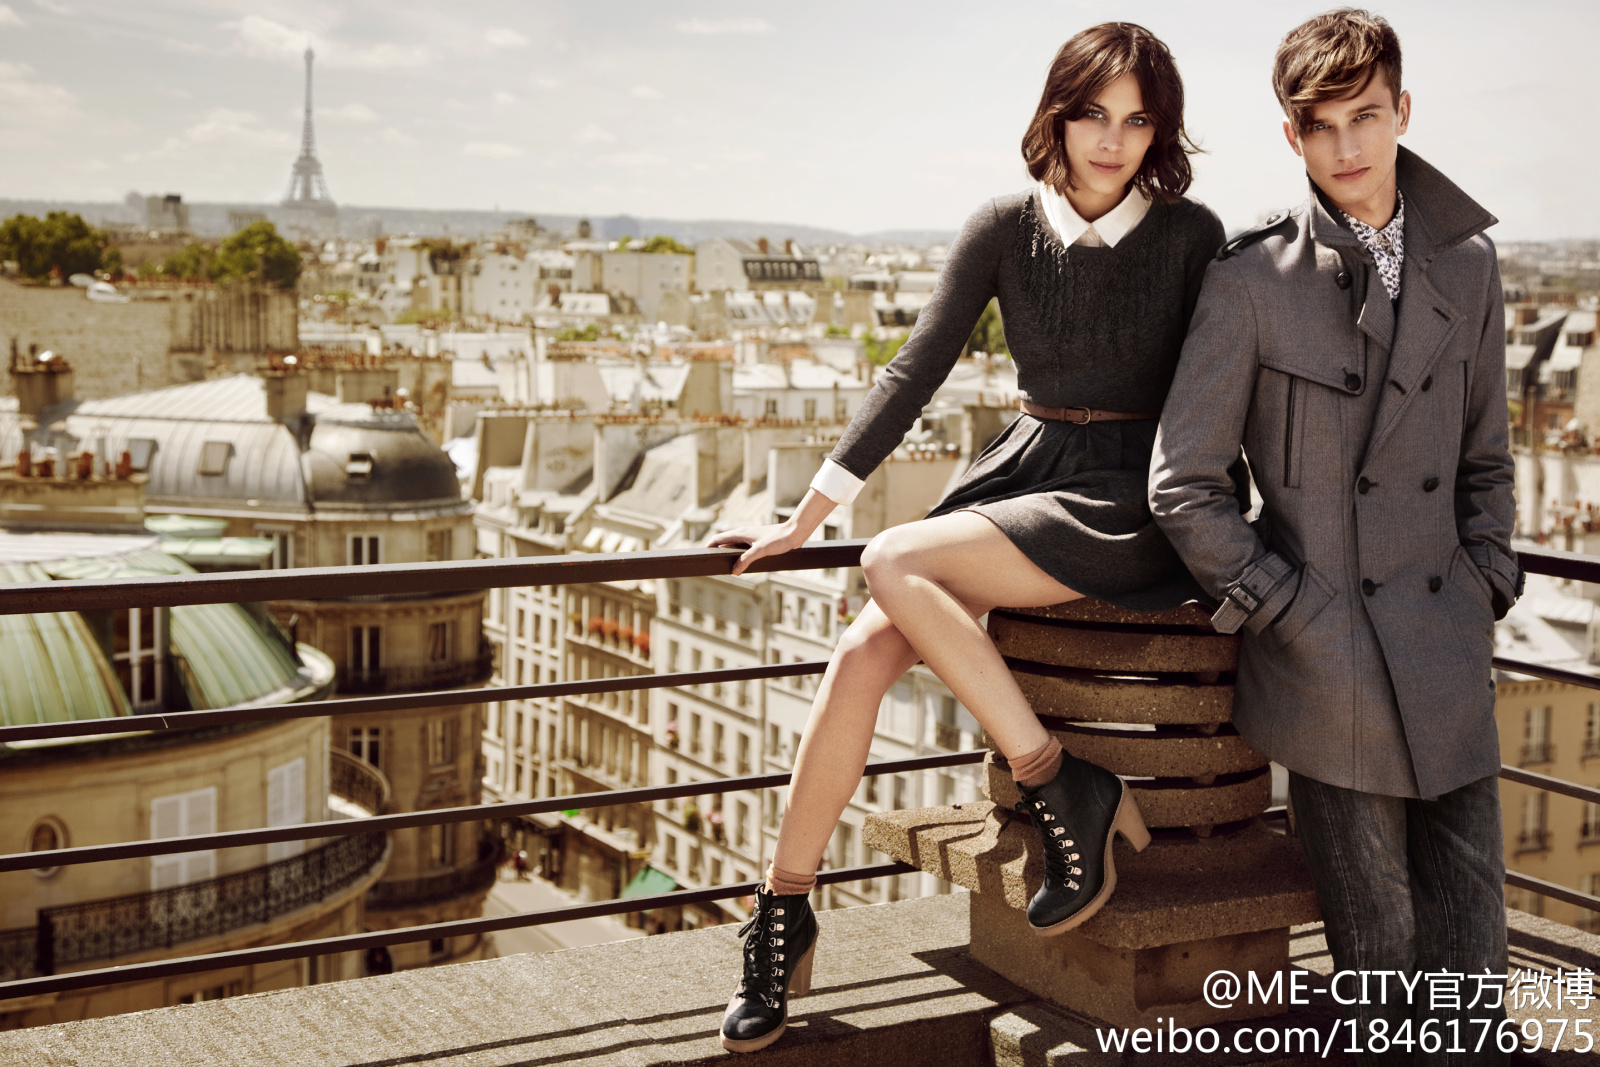 ME&CITY FW 11-12 campaign ft Alexa Chung & Dennis Jager by Kai Z Feng